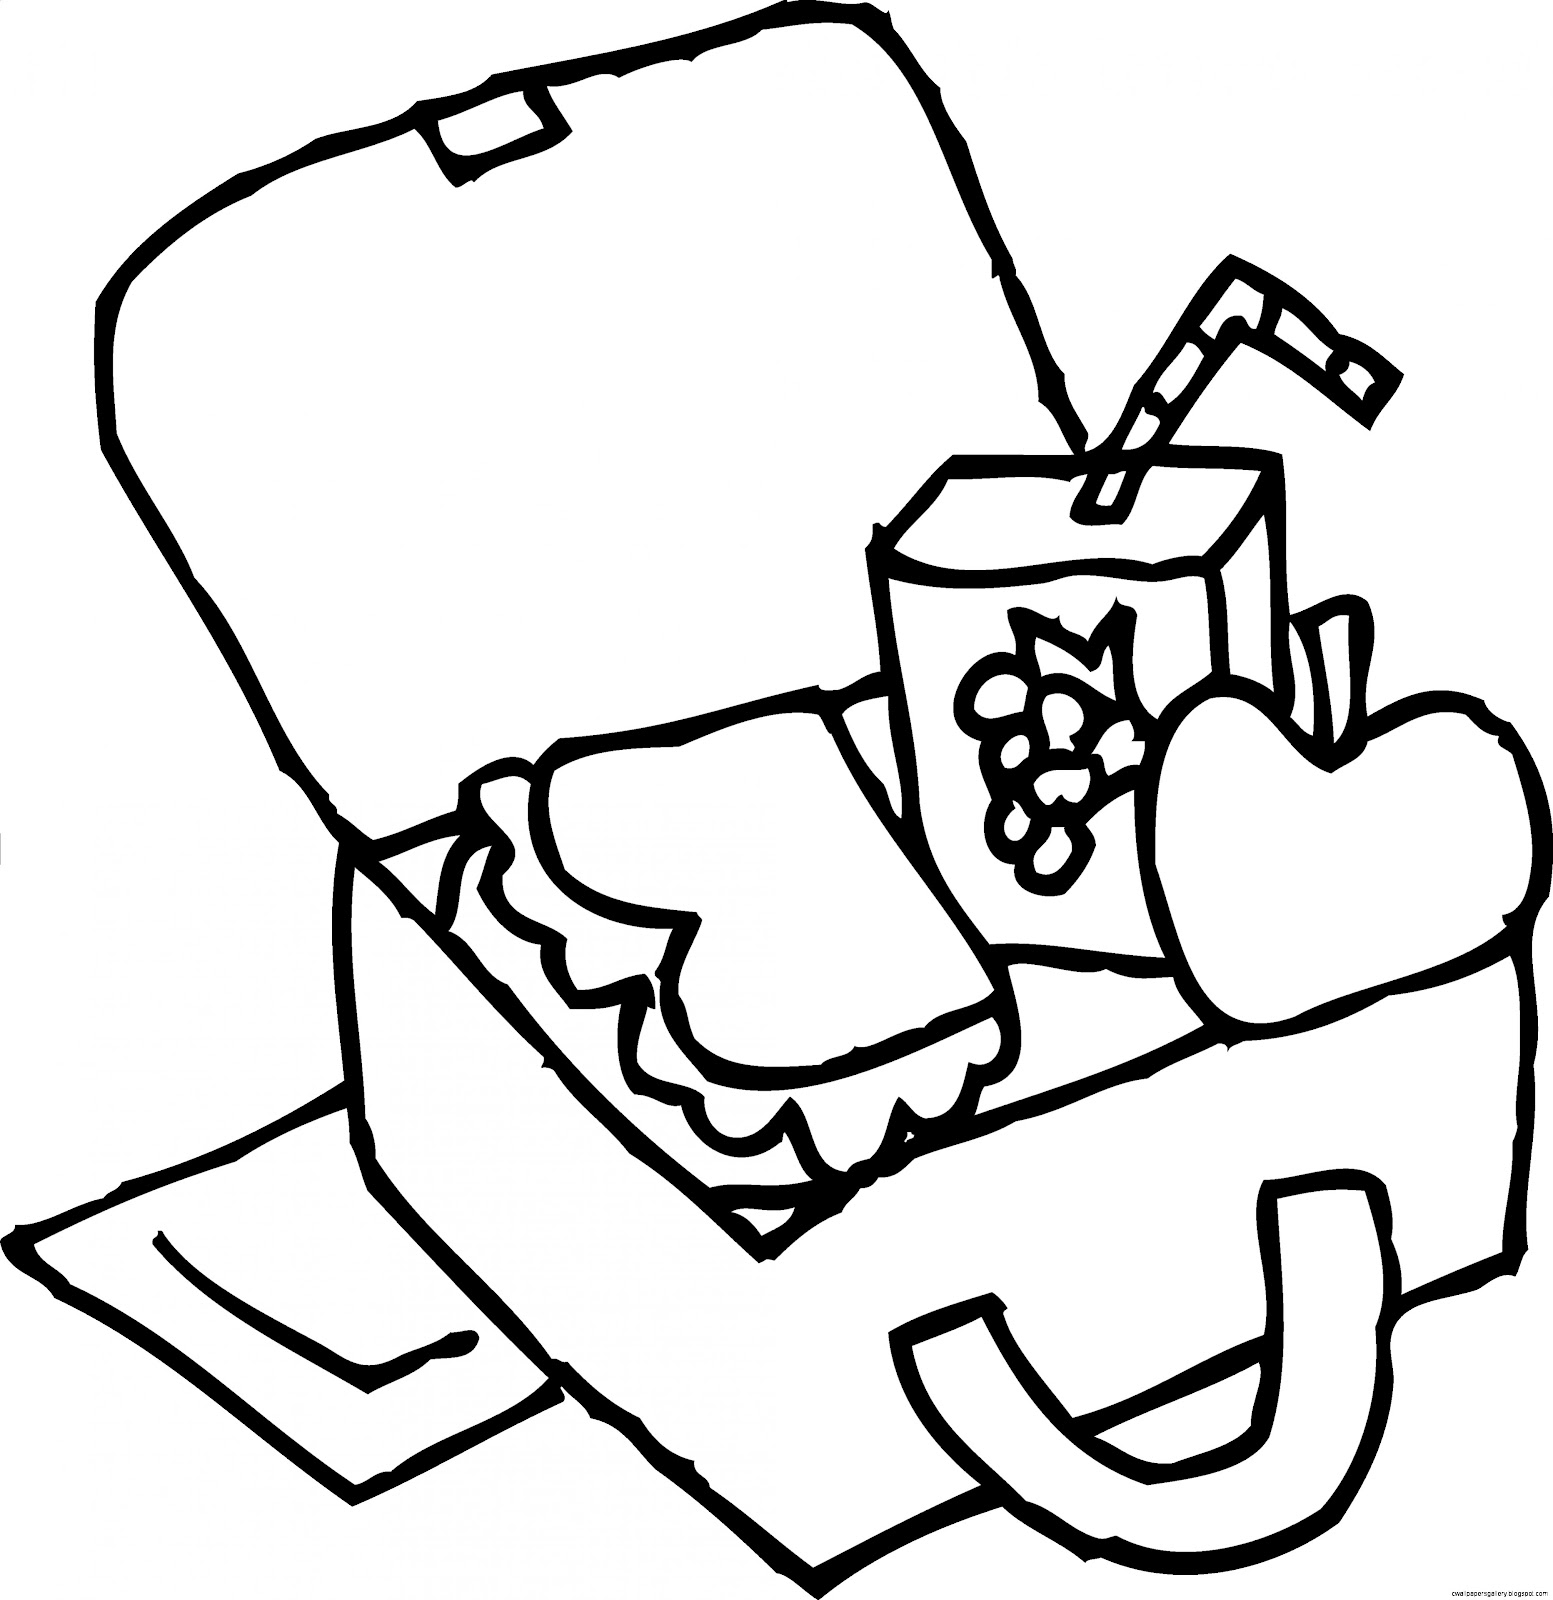 Lunch Box Clip Art Black and White